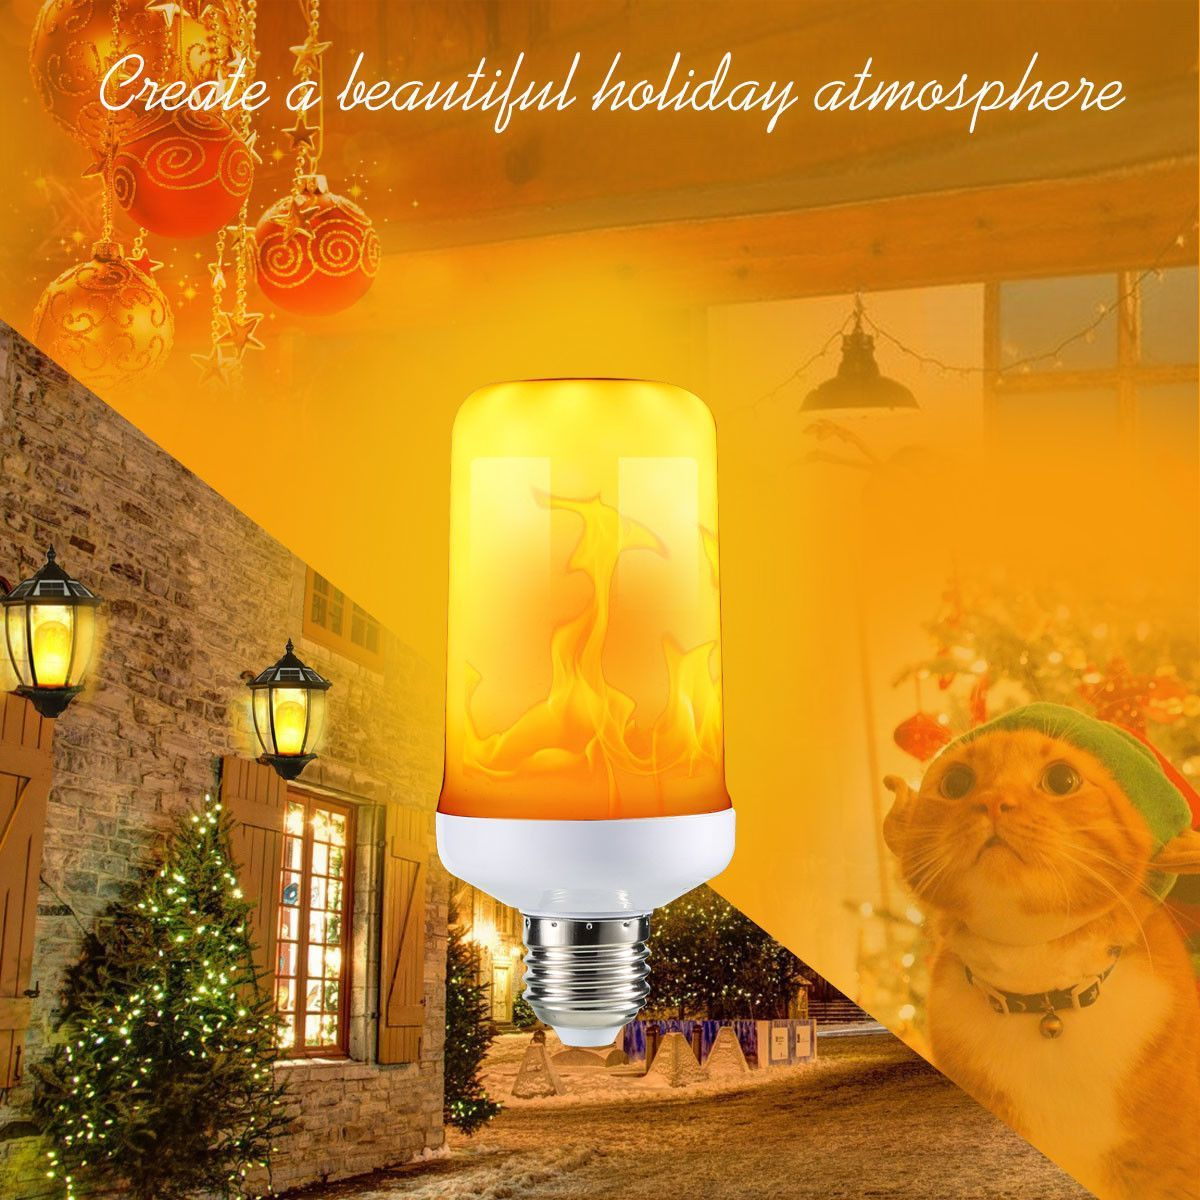 LED Flicker Flame Effect Simulated Nature Fire Light Bulb